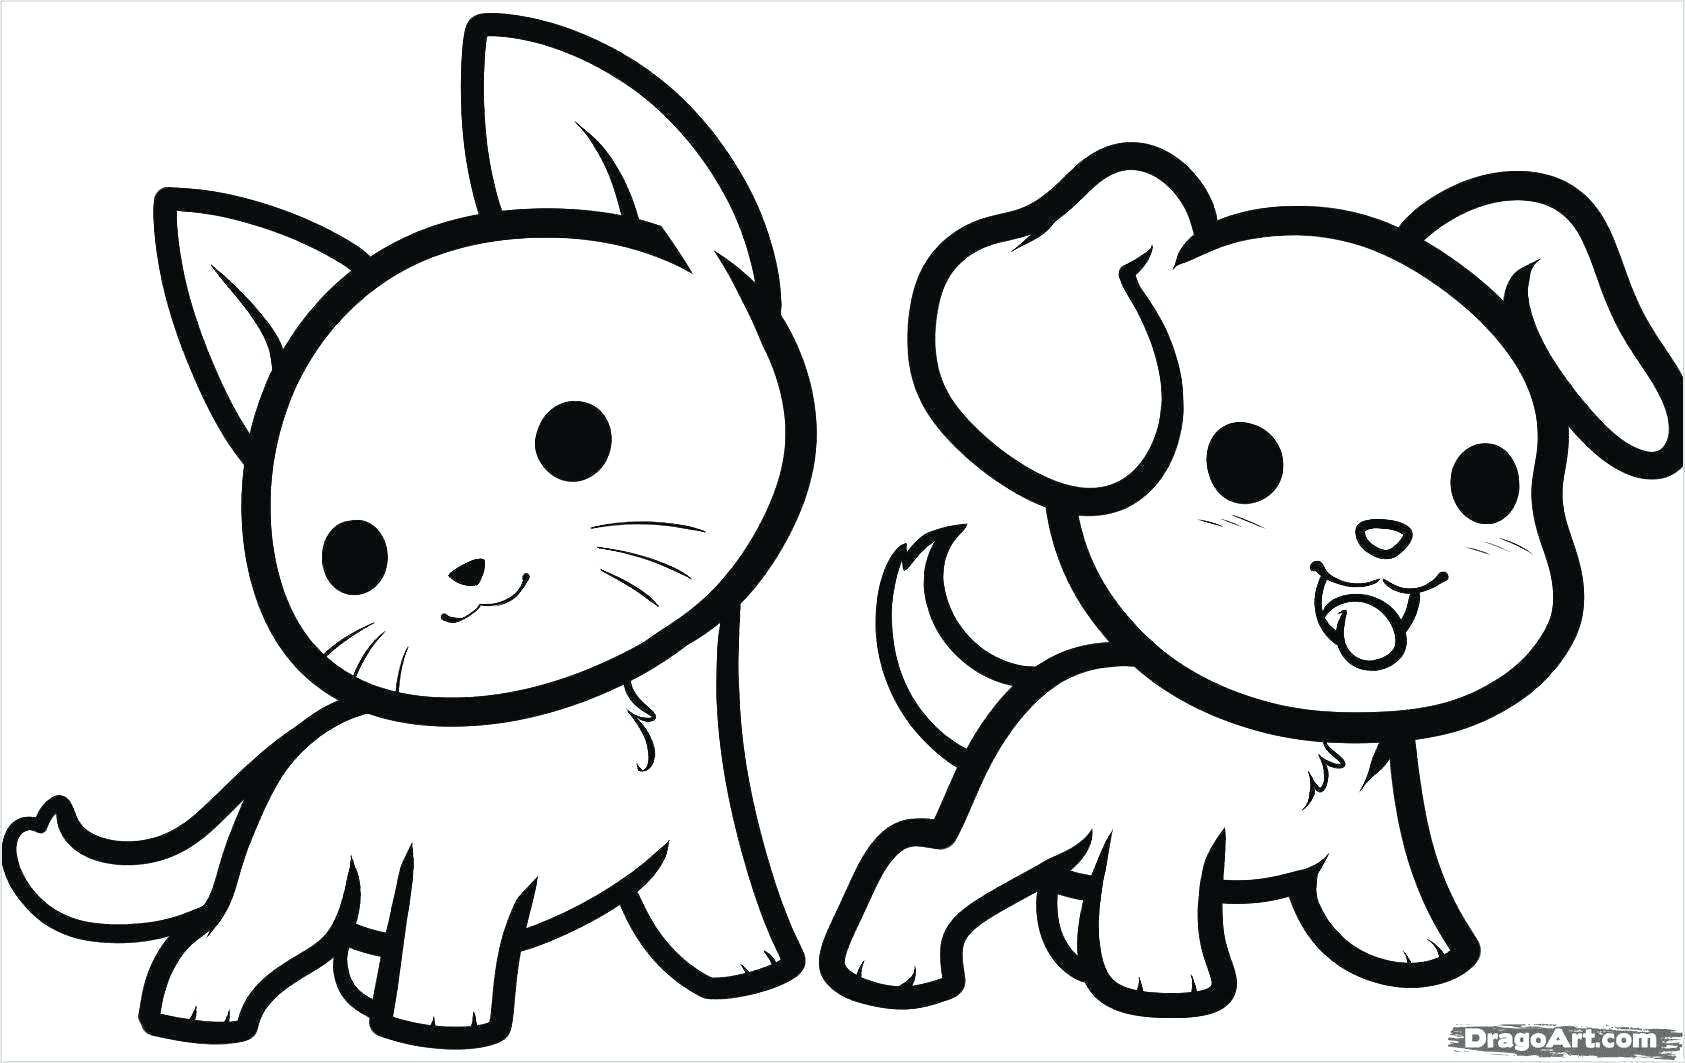 Puppy And Kitten Coloring Pages Ready To Print Cute Easy Animal Drawings Animal Drawings Animal Sketches Easy